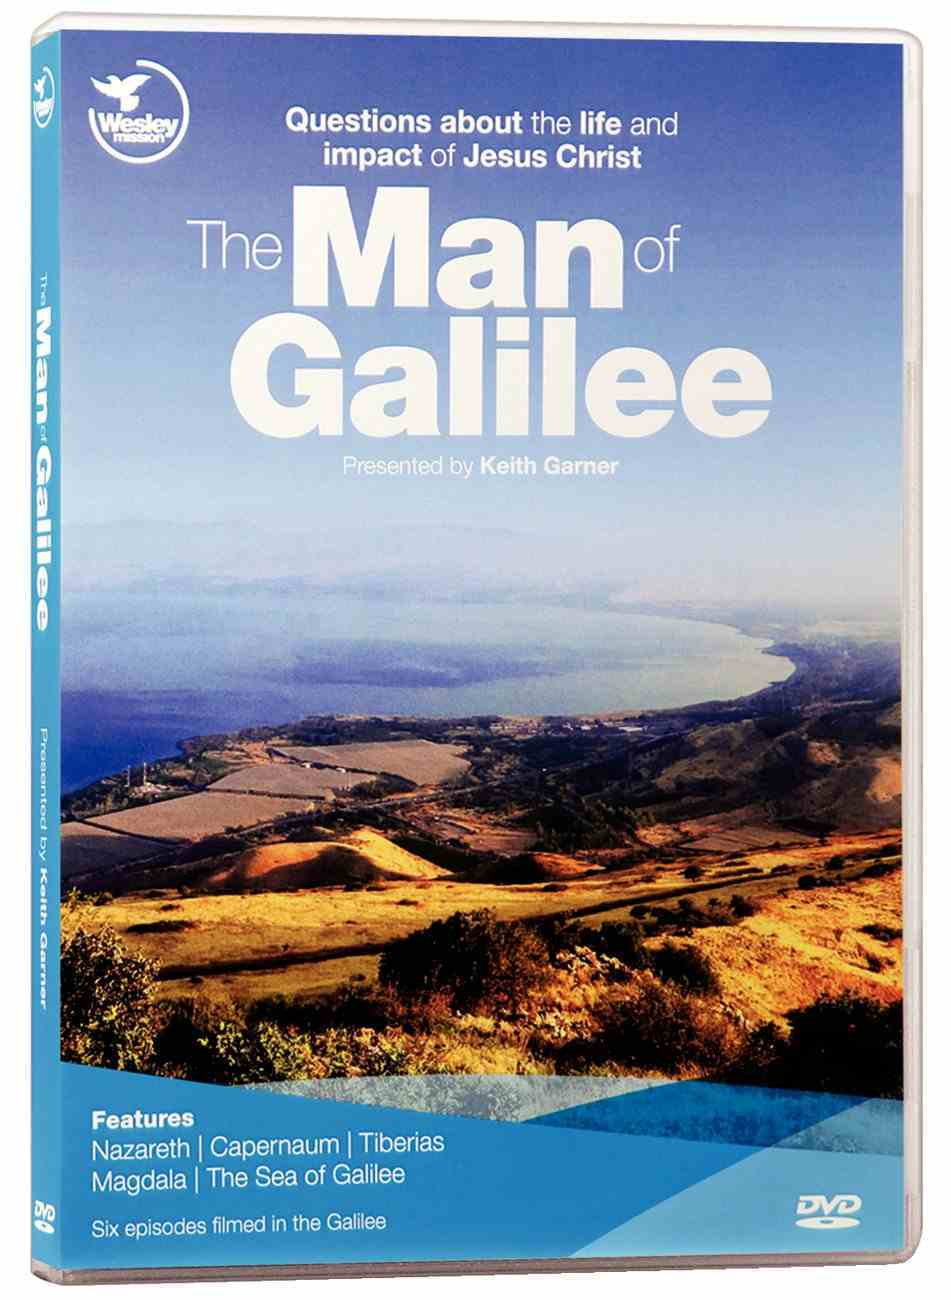 The Man of Galilee: Questions About the Life and Impact of Jesus Christ DVD